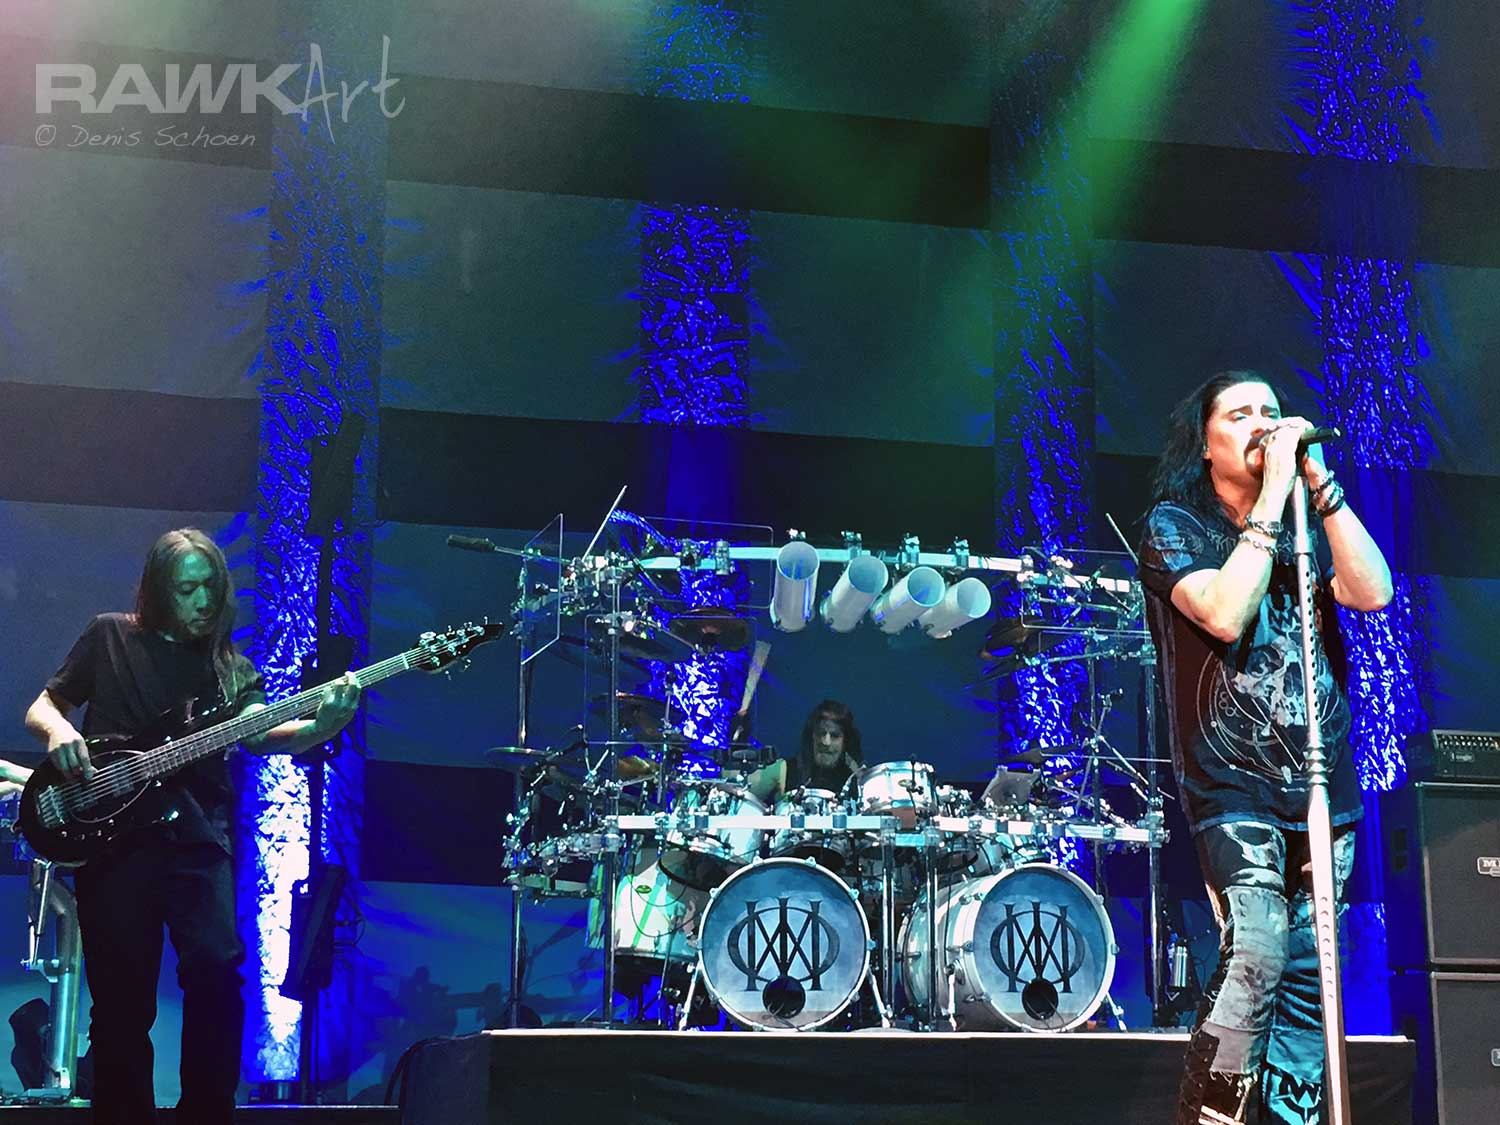 Dream Theater at Poppodium 013, Tilburg, Netherlands 2017, Images, Words & Beyond 25th Anniversary Tour